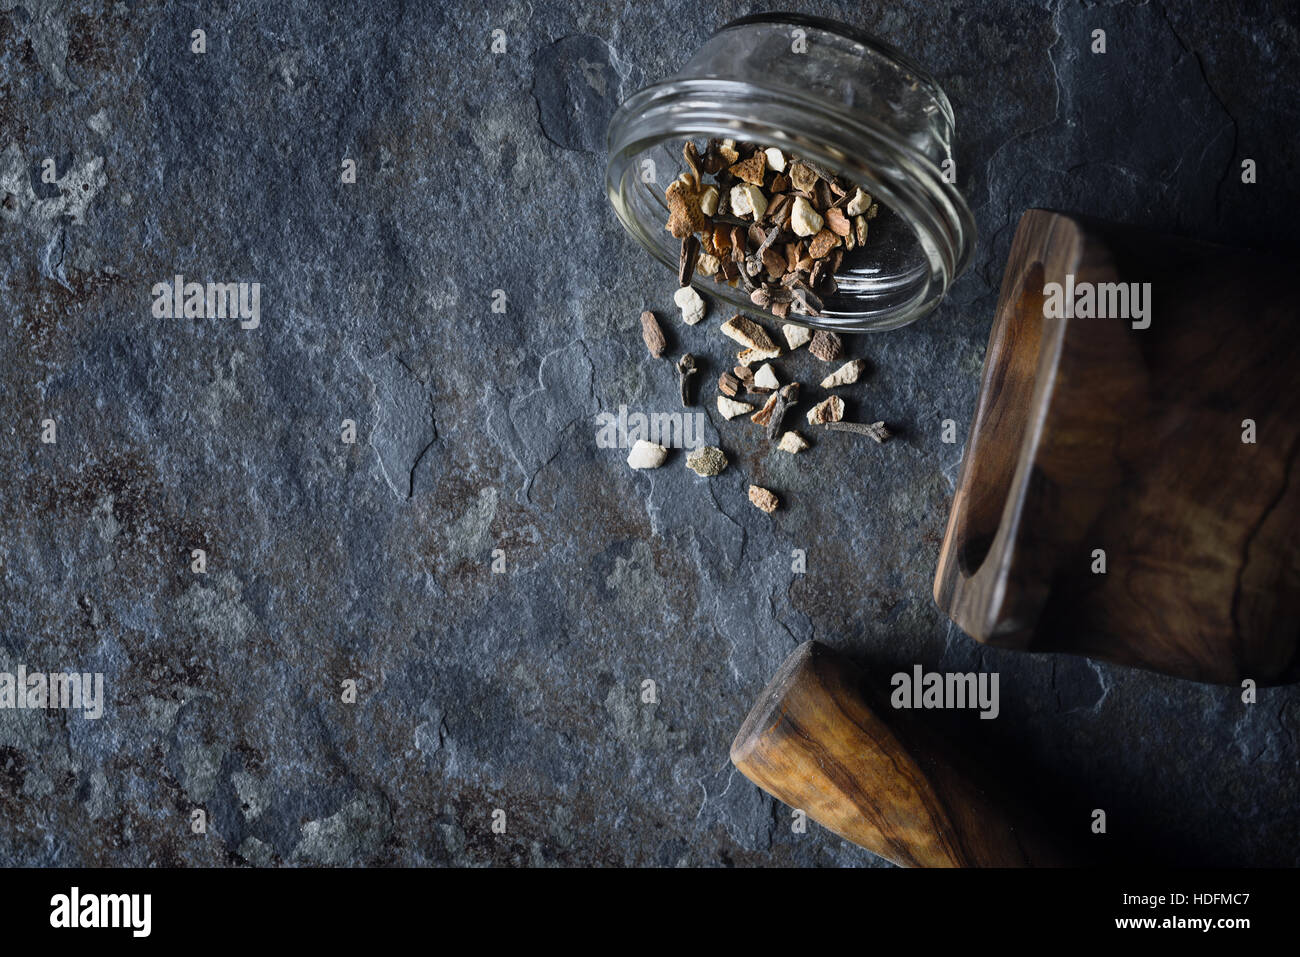 Spices mix on the stone background top view - Stock Image